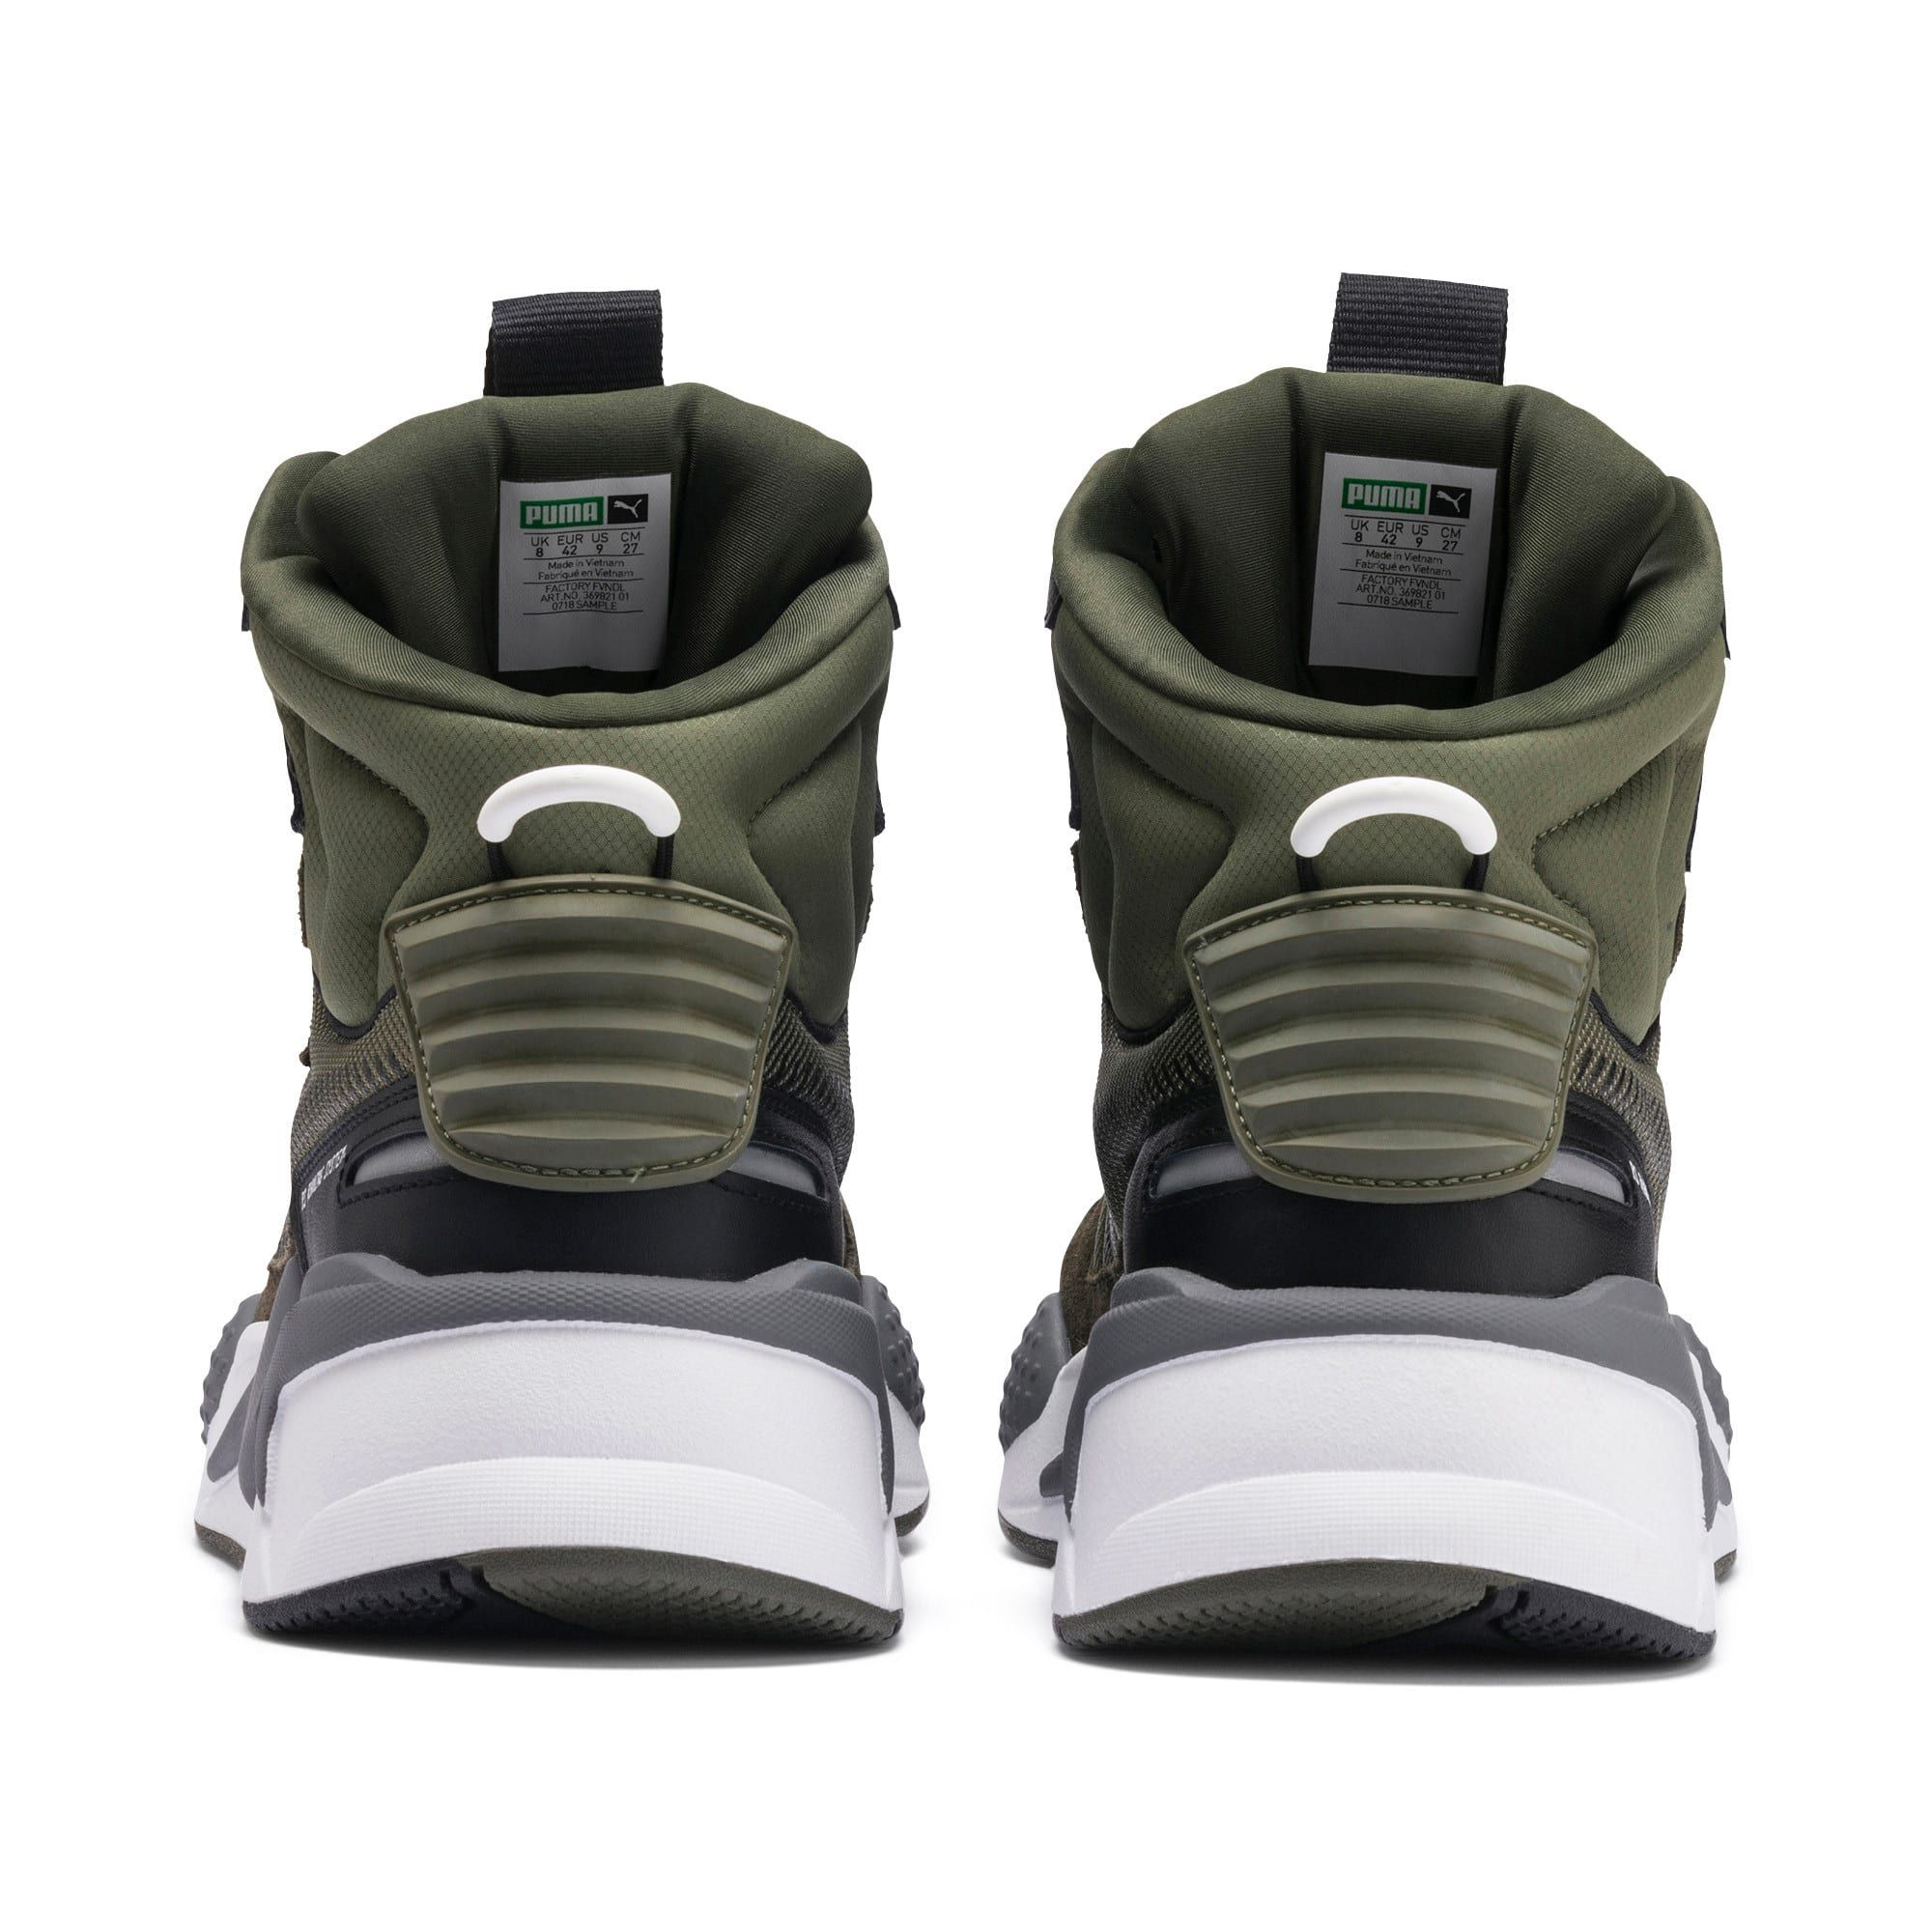 RS X Midtop Utility Trainers Pumas sko, l?r, trenere  Pumas shoes, Leather, Trainers